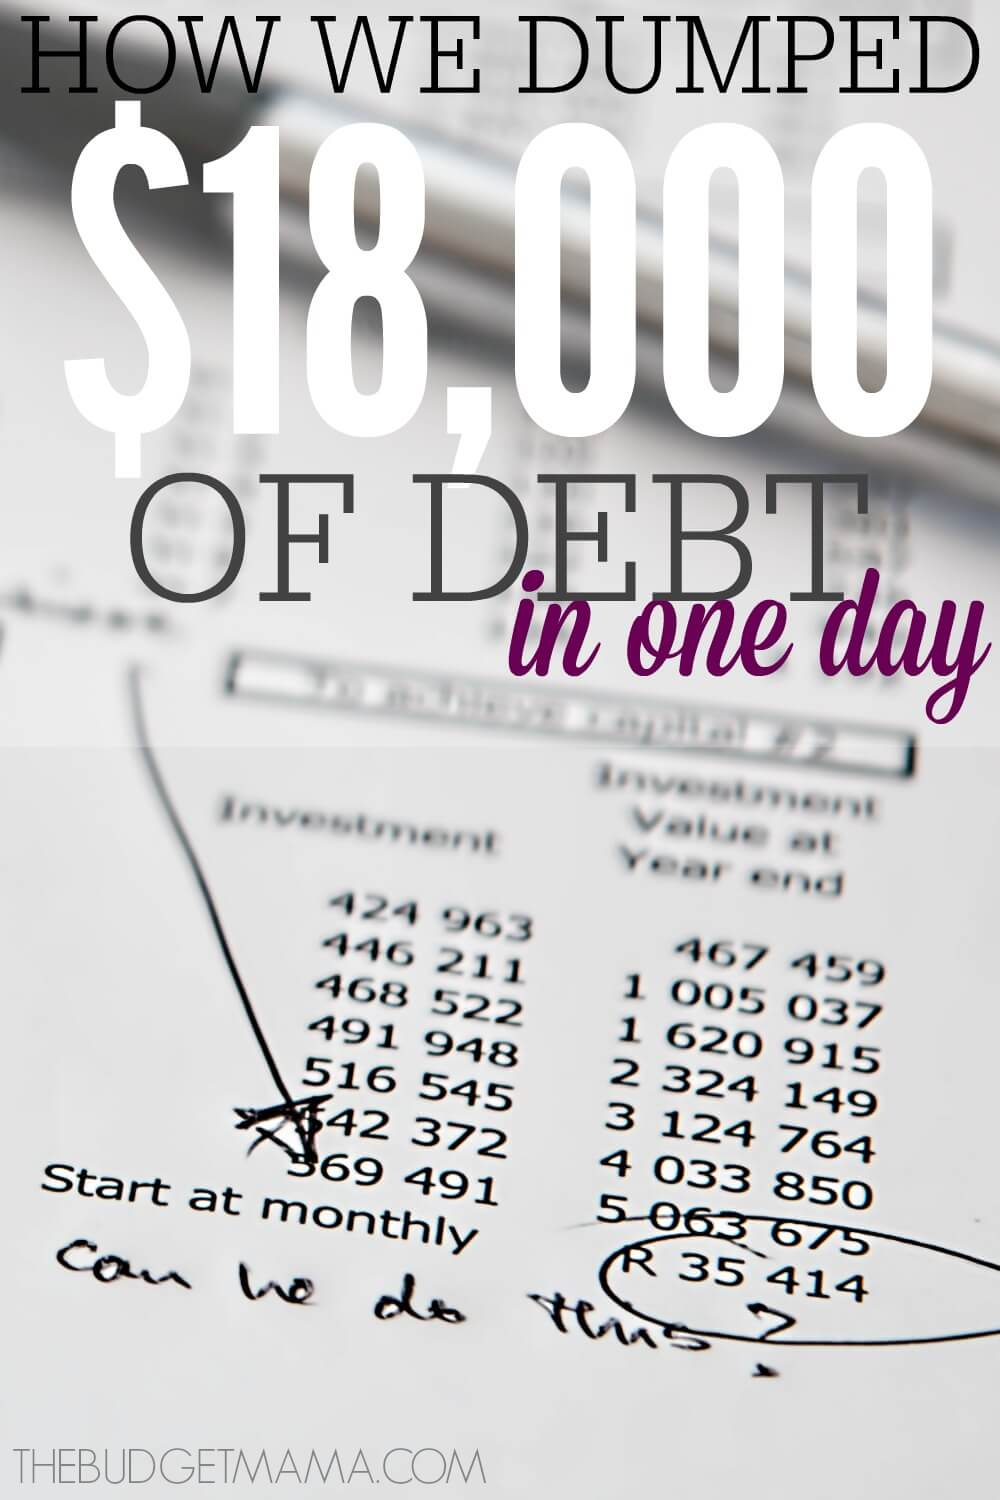 Becoming debt-free isn't always easy. We sometimes have to make though decisions and dumping $18K of debt in one day was a very though decision.